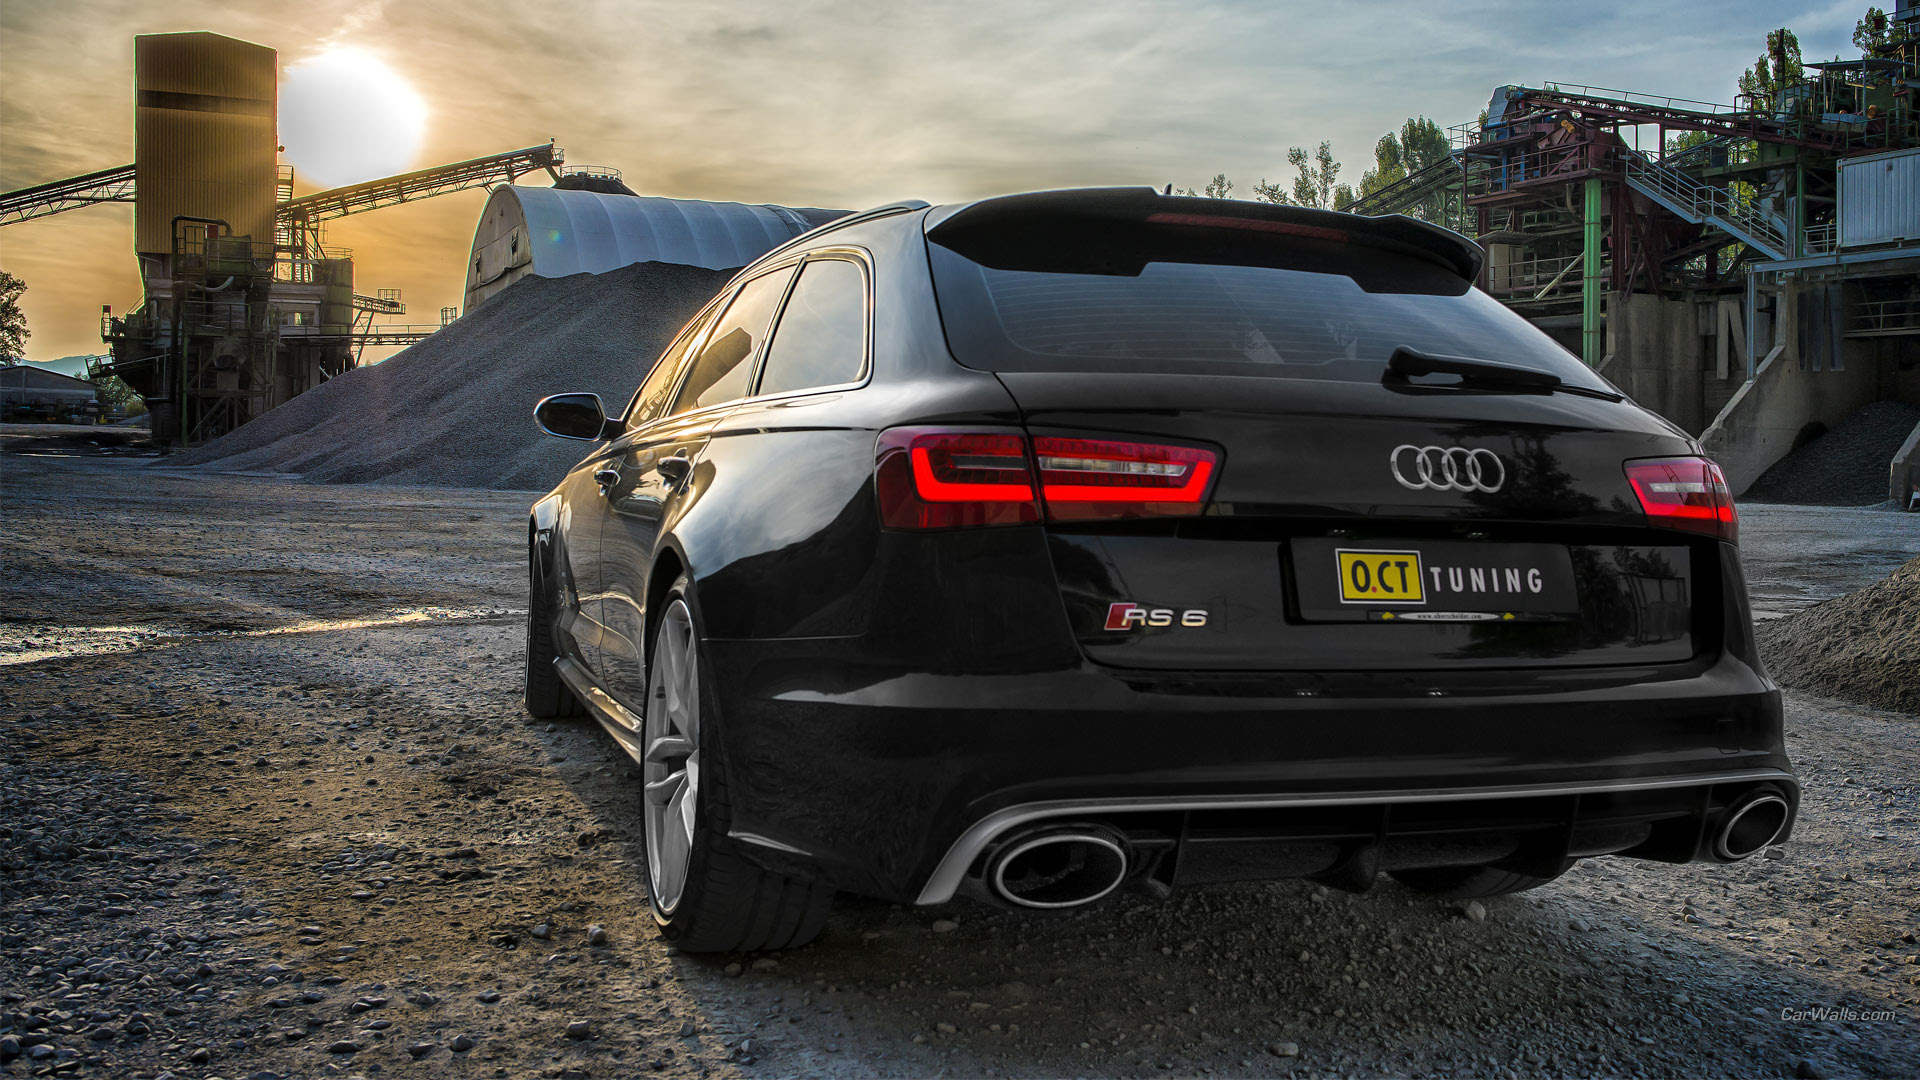 Alpha Coders Wallpaper Abyss Véhicules 2013 Audi RS6 By O.CT Tuning ...